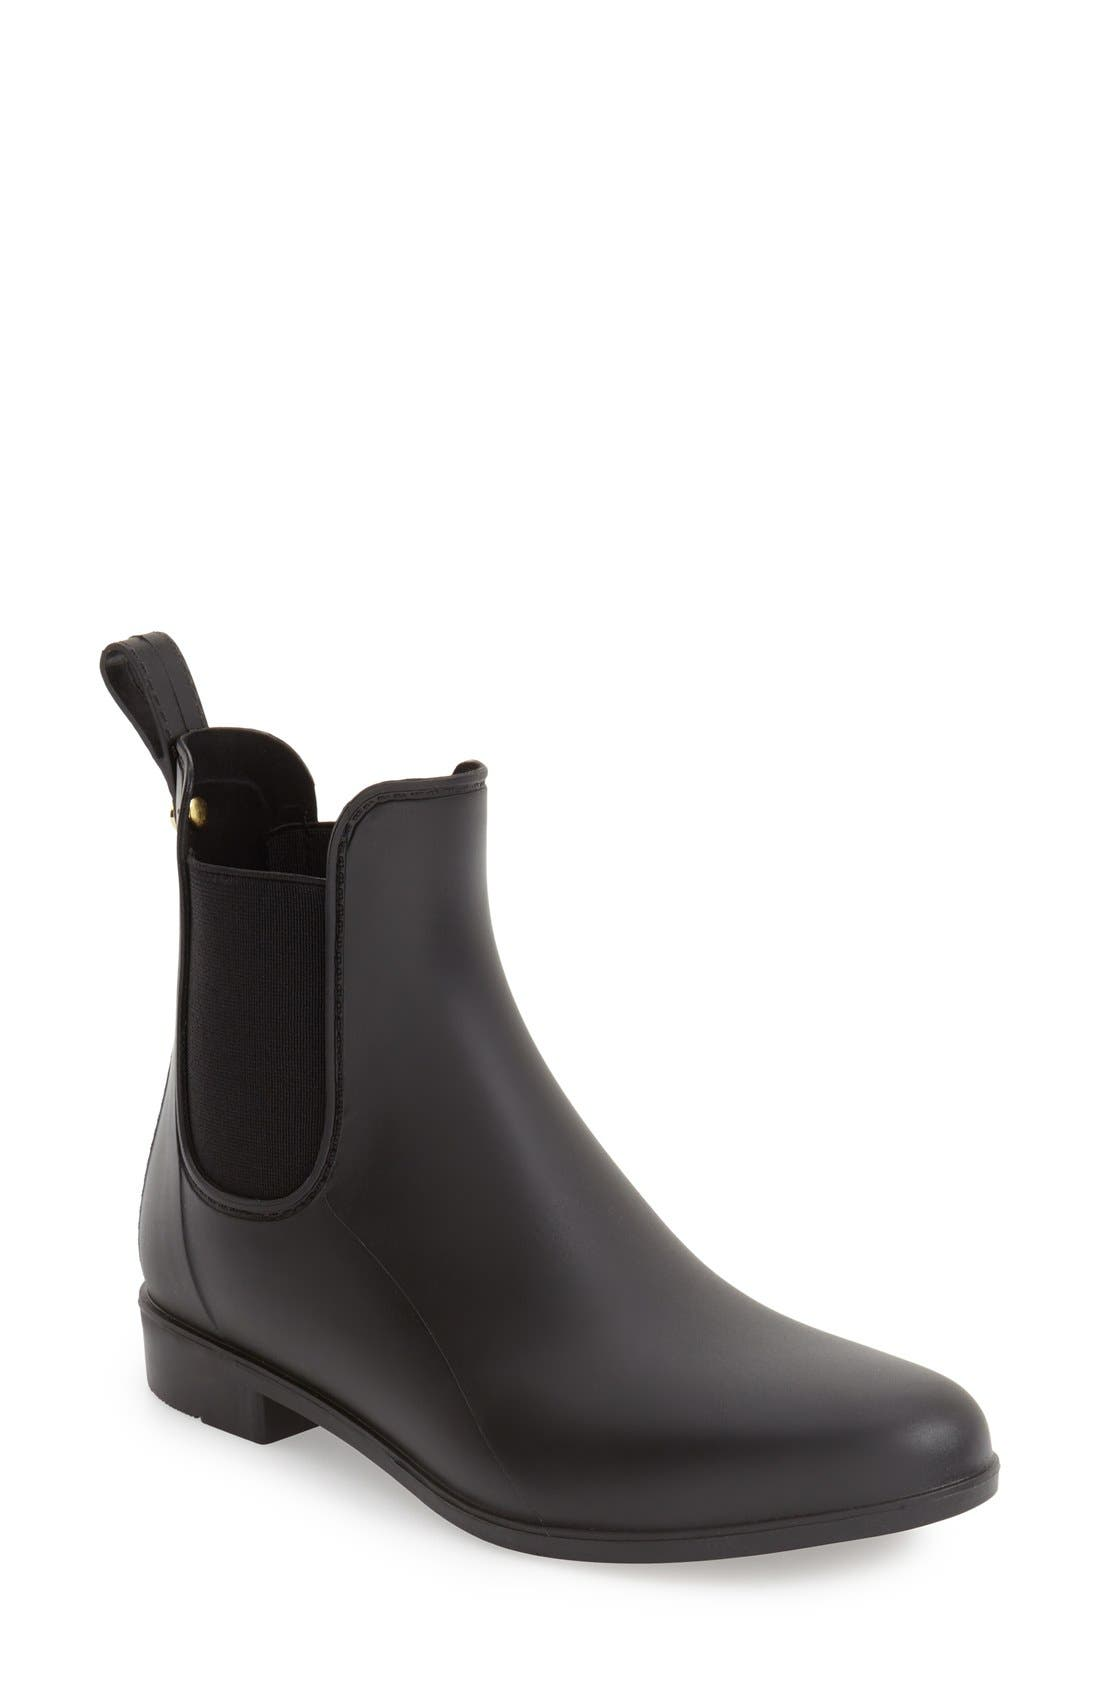 Main Image - Sam Edelman 'Tinsley' Rain Boot (Women)